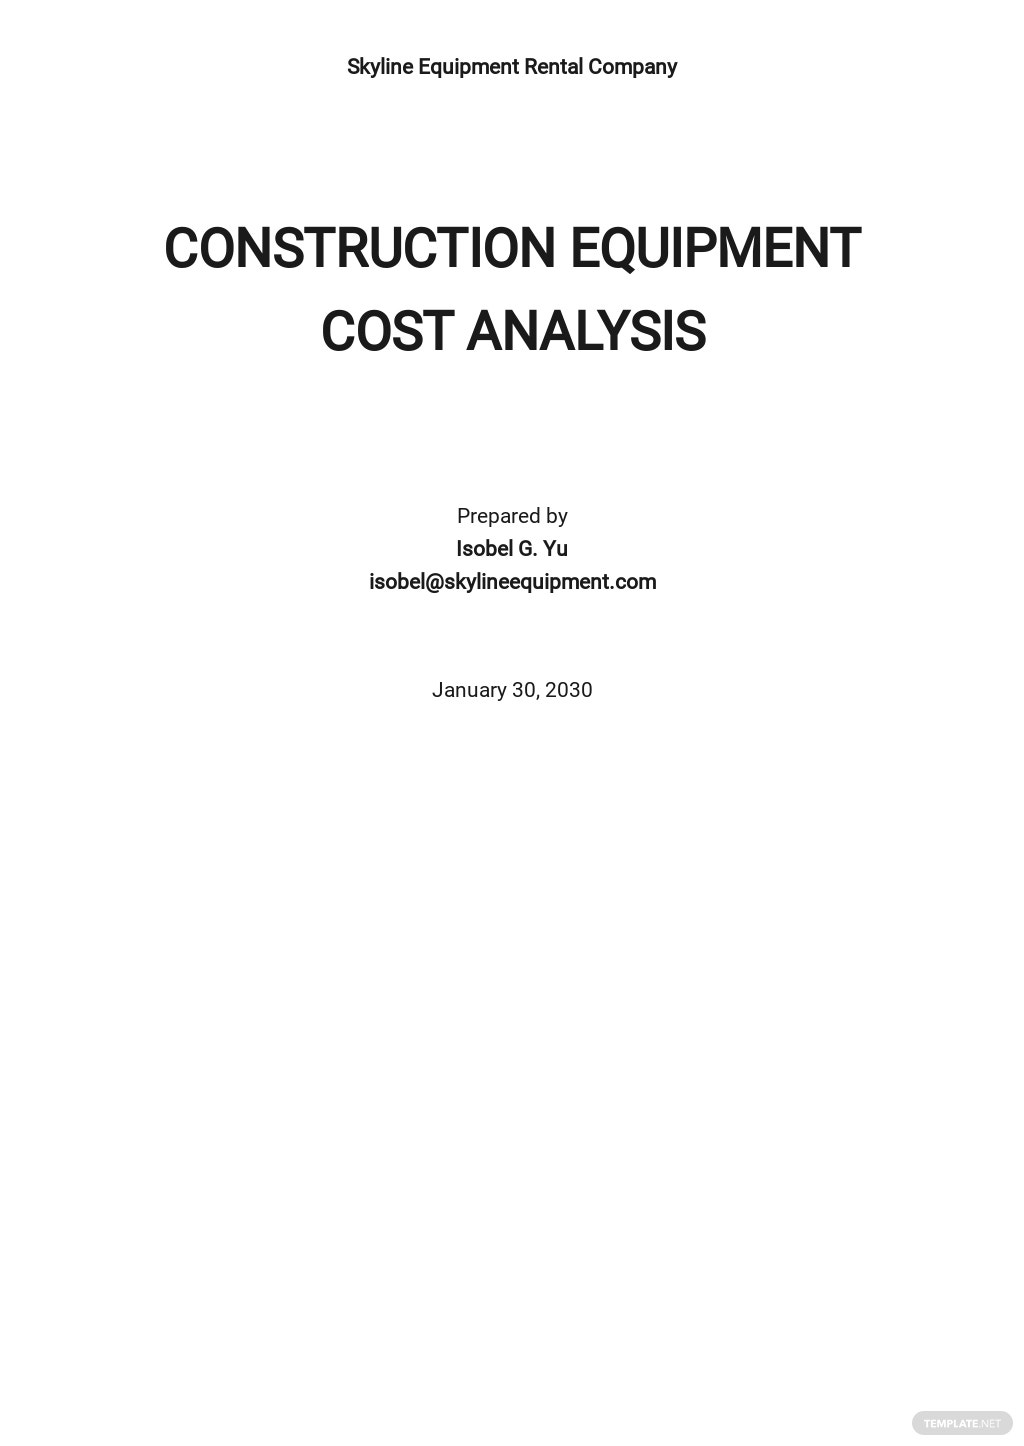 Construction Equipment Cost Analysis Template